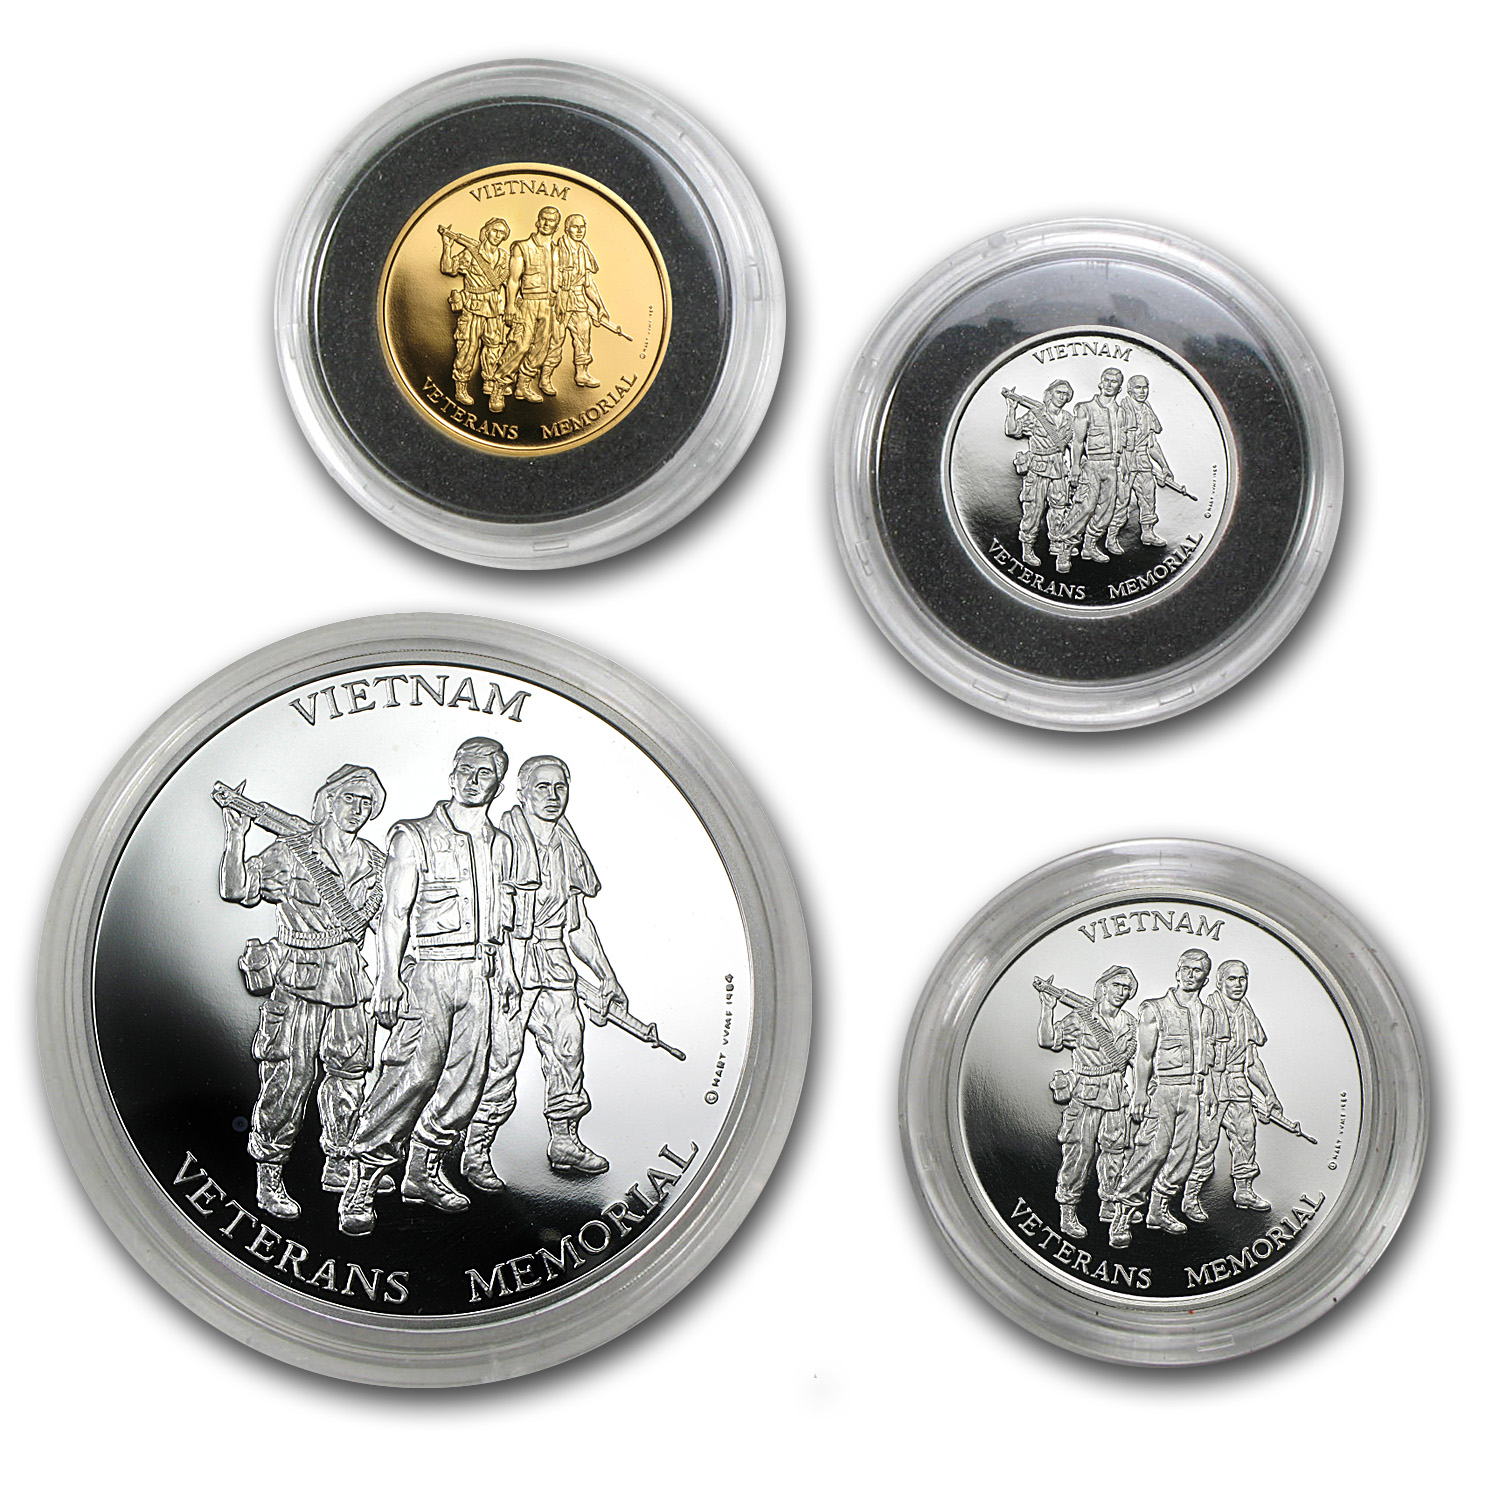 4 Metals Set - Vietnam Veterans Memorial Set (In Capsule)